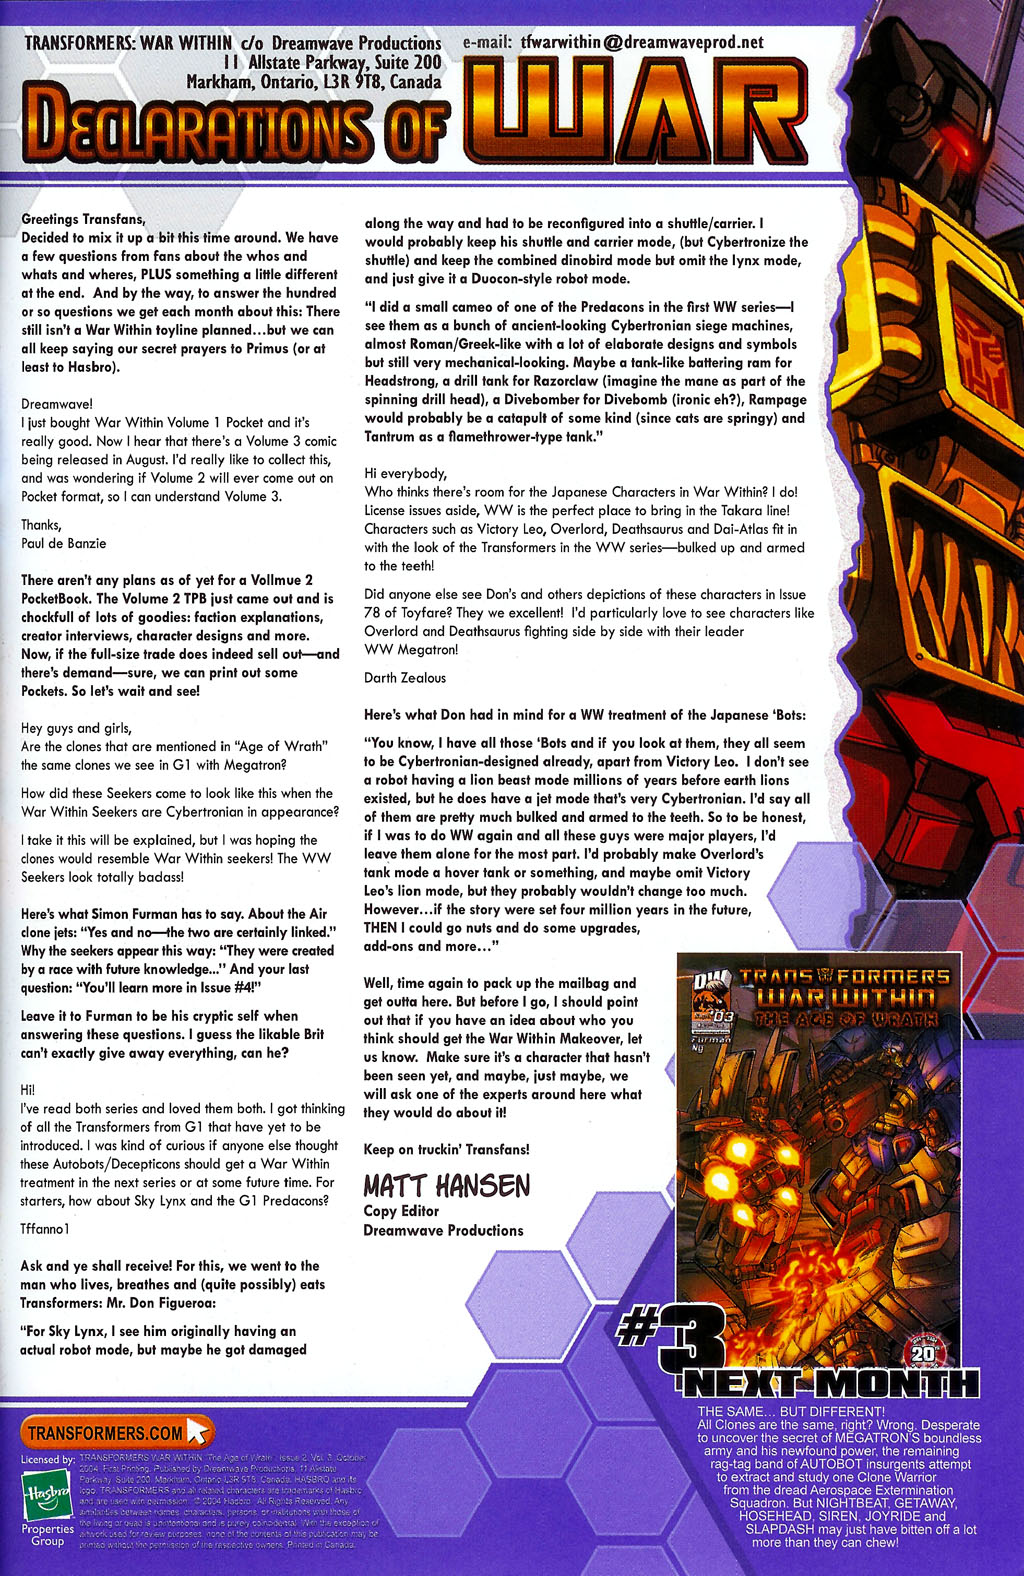 """Read online Transformers War Within: """"The Age of Wrath"""" comic -  Issue #2 - 23"""